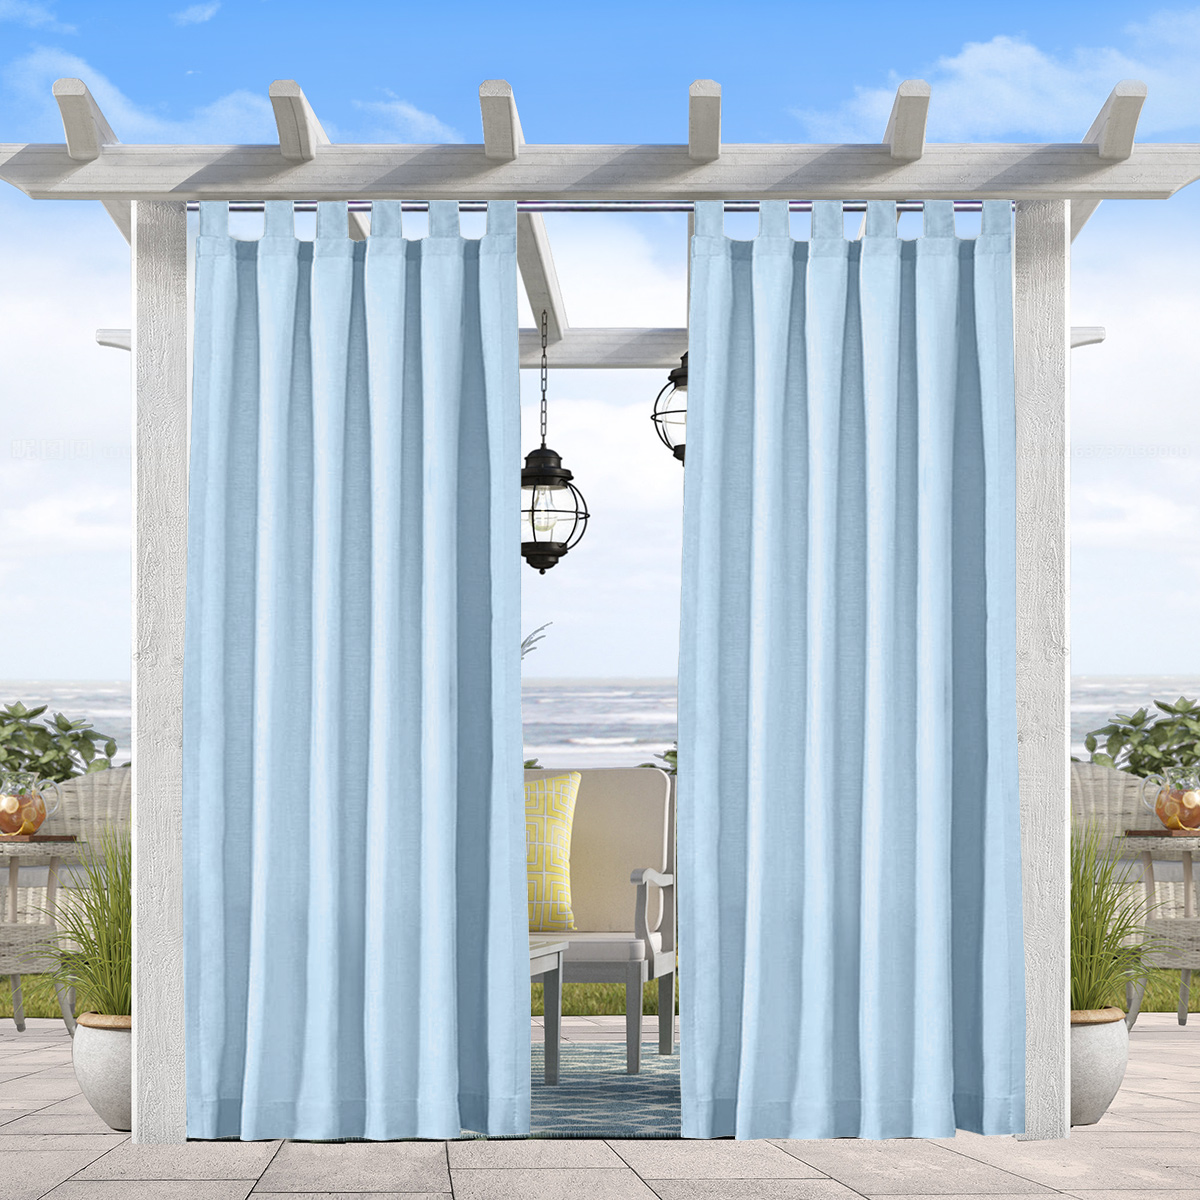 pro space outdoor curtain panels patio privacy screen hook loop curtain panel blackout uv ray protected waterproof outdoor drape front